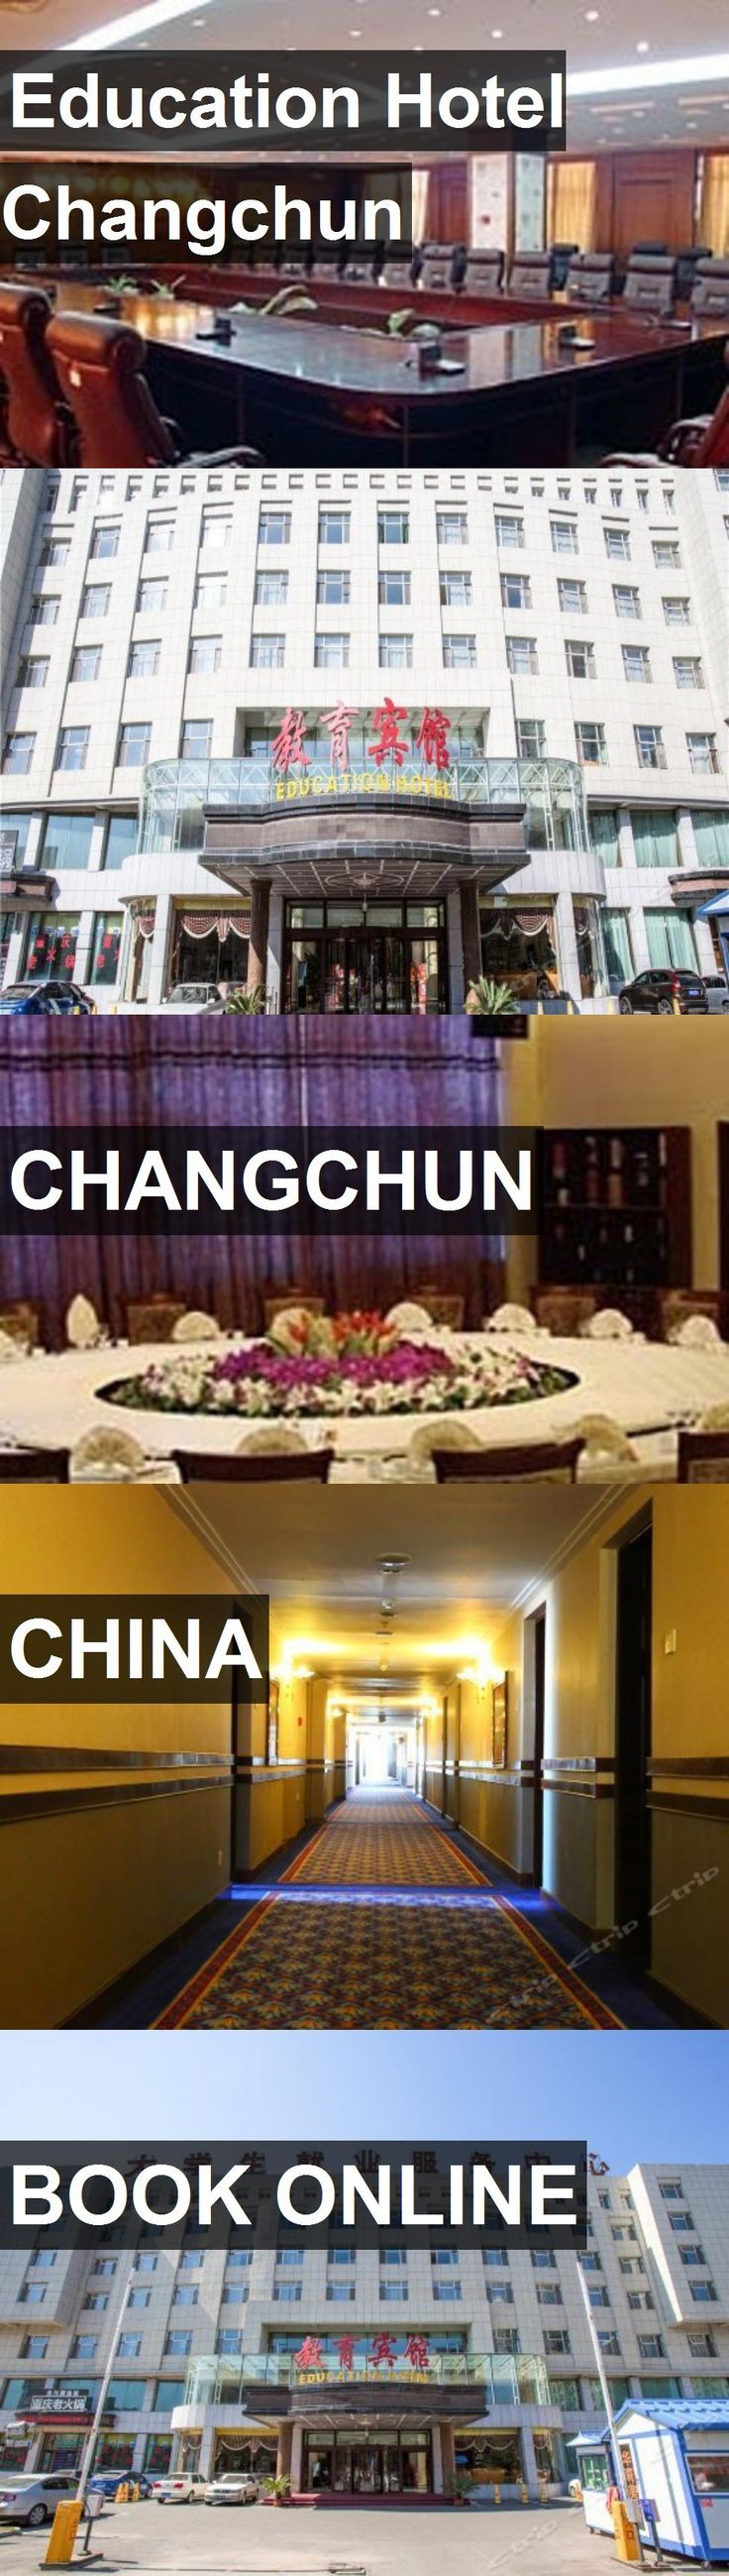 Education Hotel Changchun in Changchun, China. For more information, photos, reviews and best prices please follow the link. #China #Changchun #travel #vacation #hotel